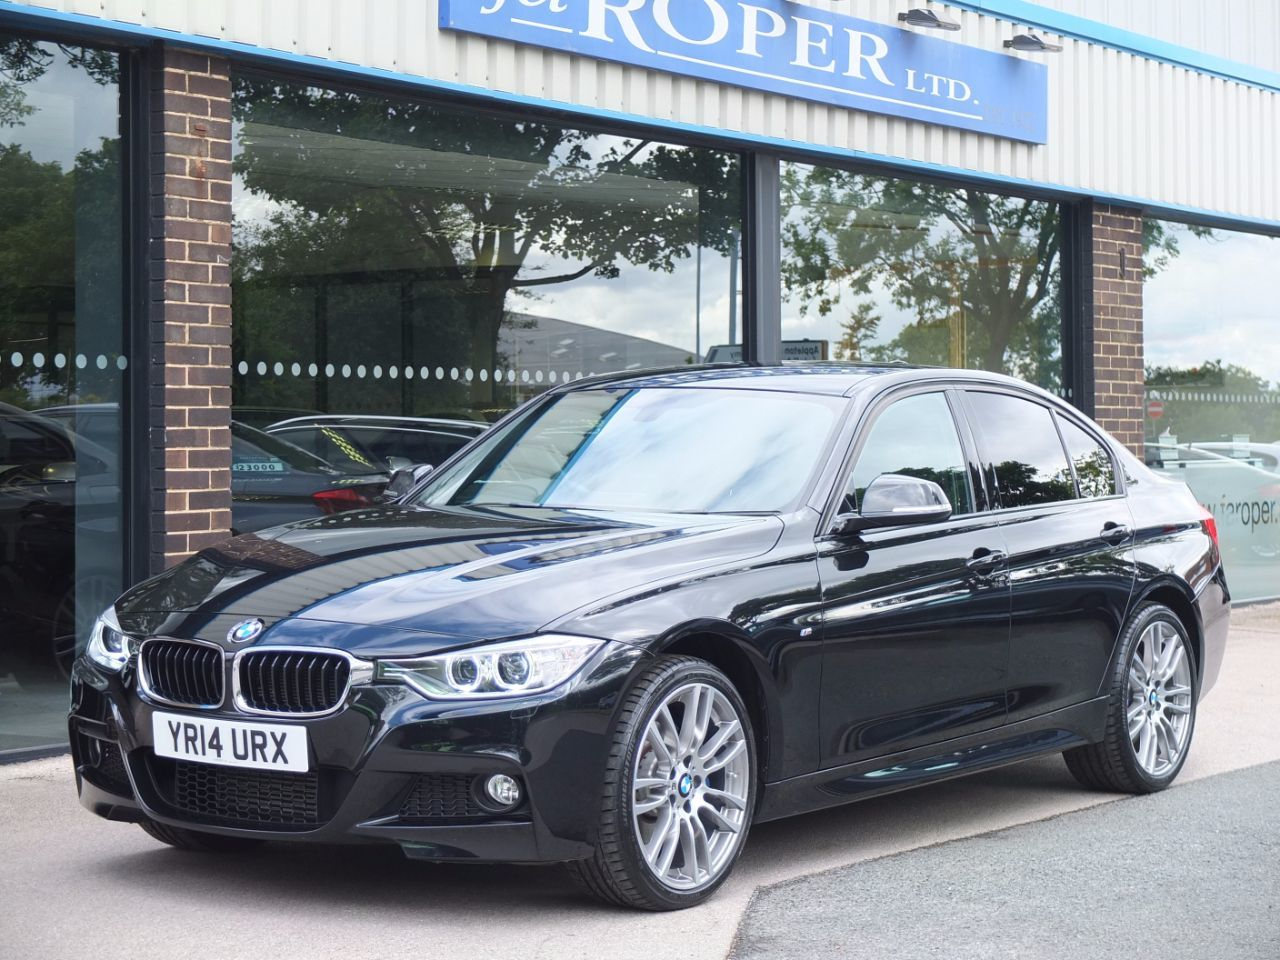 BMW 3 Series 2.0 320d xDrive M Sport (Media Pack, M Sport Plus) Saloon Diesel Black Sapphire MetallicBMW 3 Series 2.0 320d xDrive M Sport (Media Pack, M Sport Plus) Saloon Diesel Black Sapphire Metallic at fa Roper Ltd Bradford